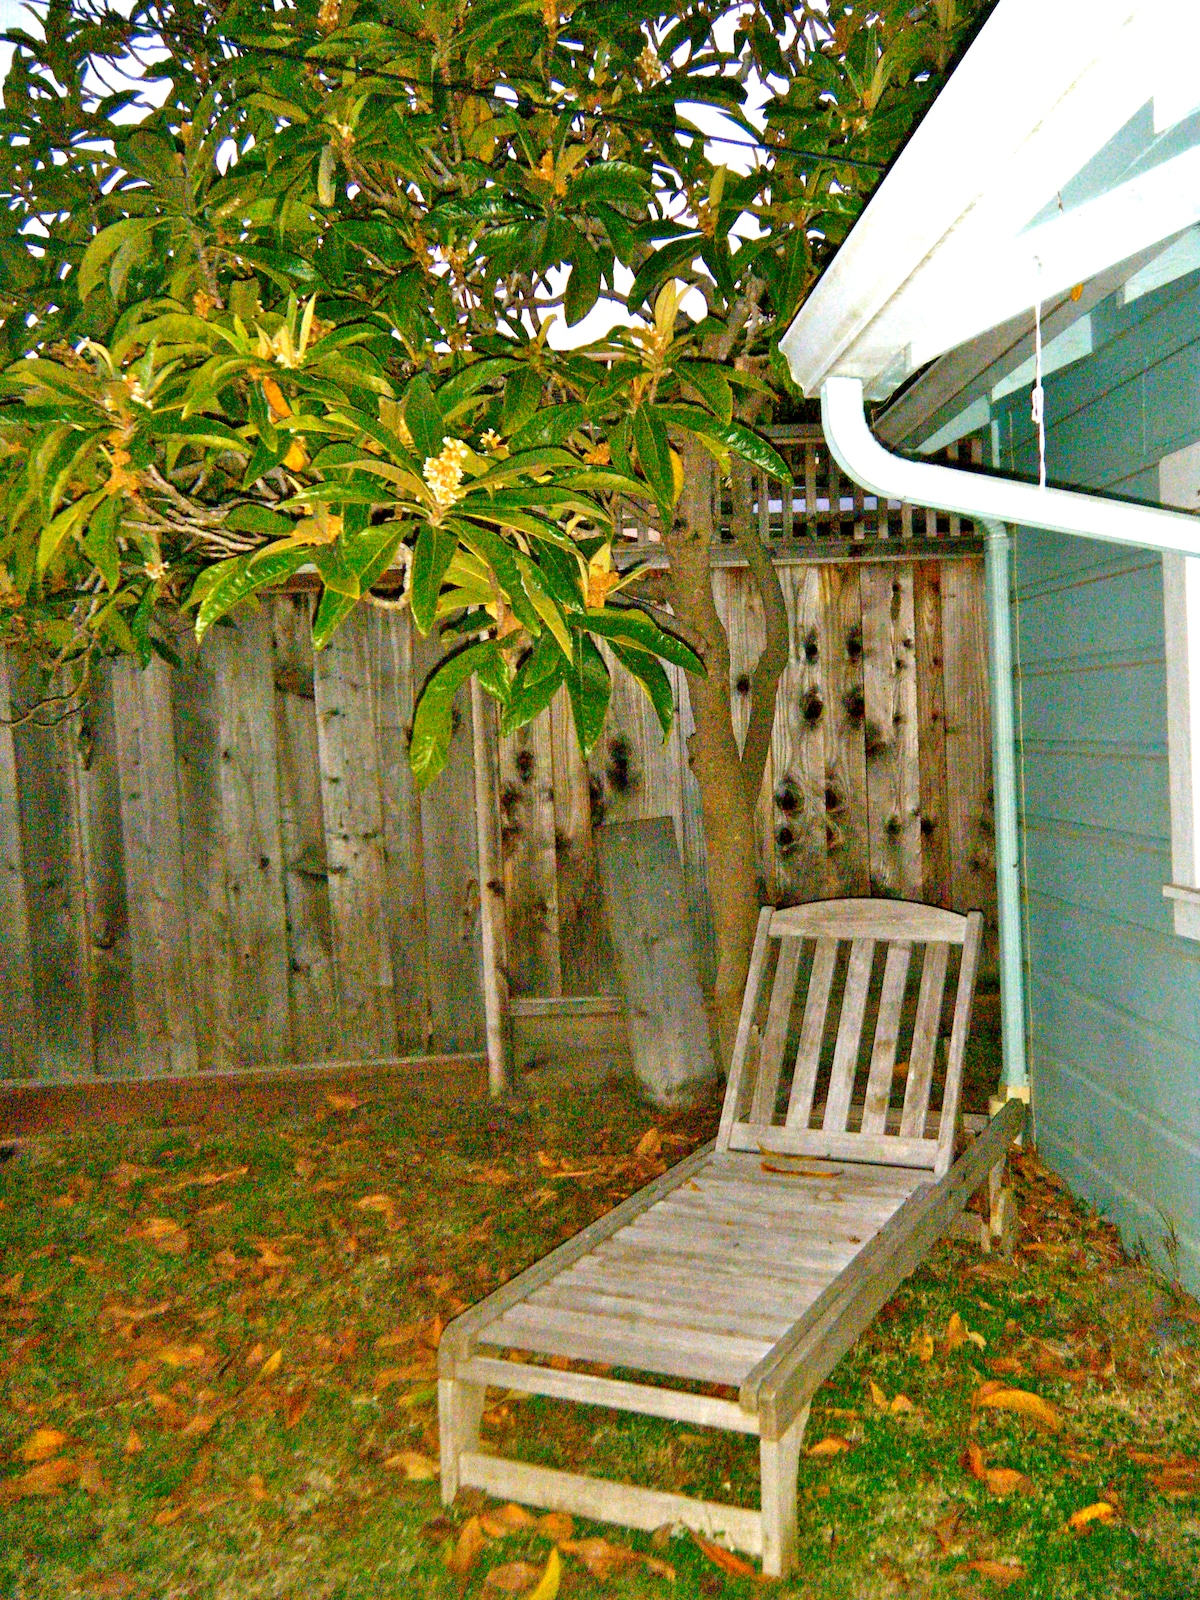 Chaise longue under the loquat tree.